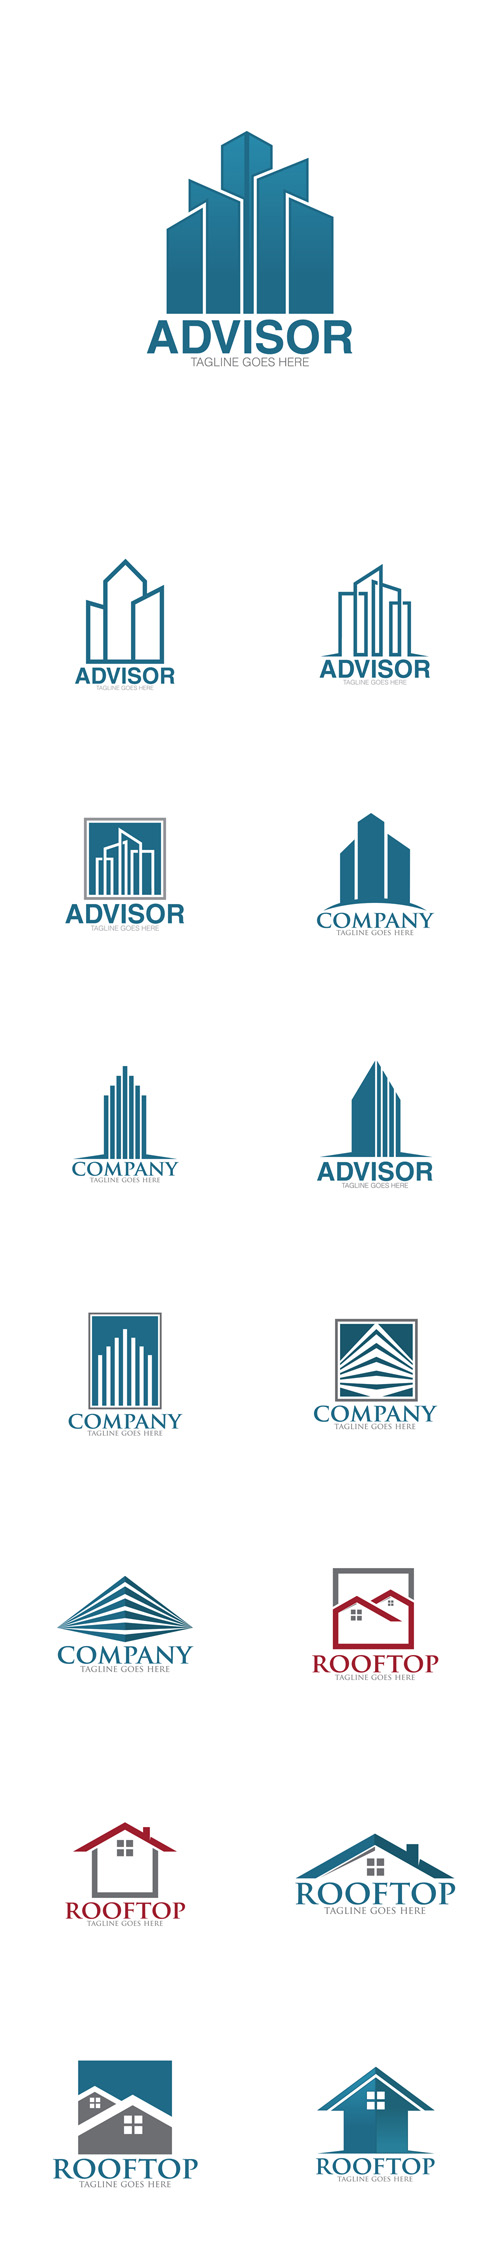 Vector Building Advisor and Home Roof Top Logos